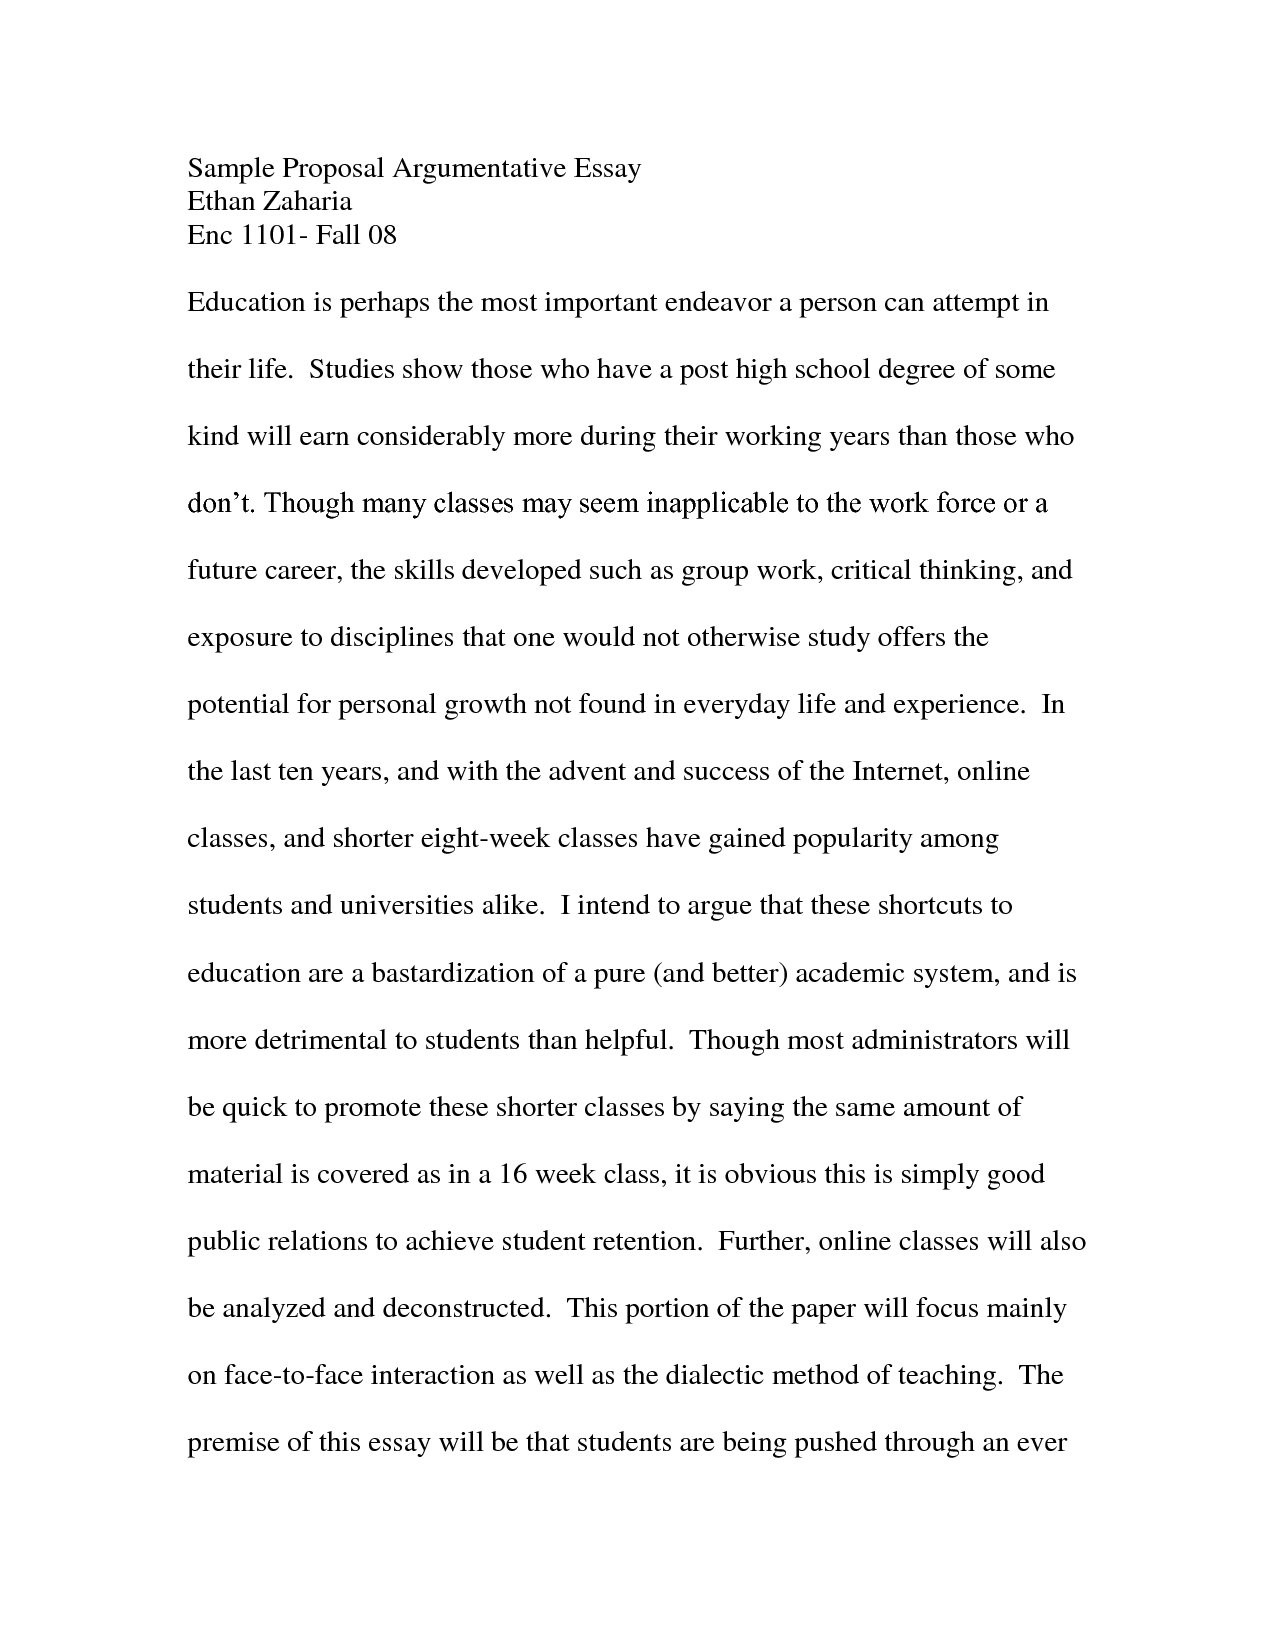 Argumentative Essay Examples College - Fieldstation.co in Argumentative Essay Format College 20981